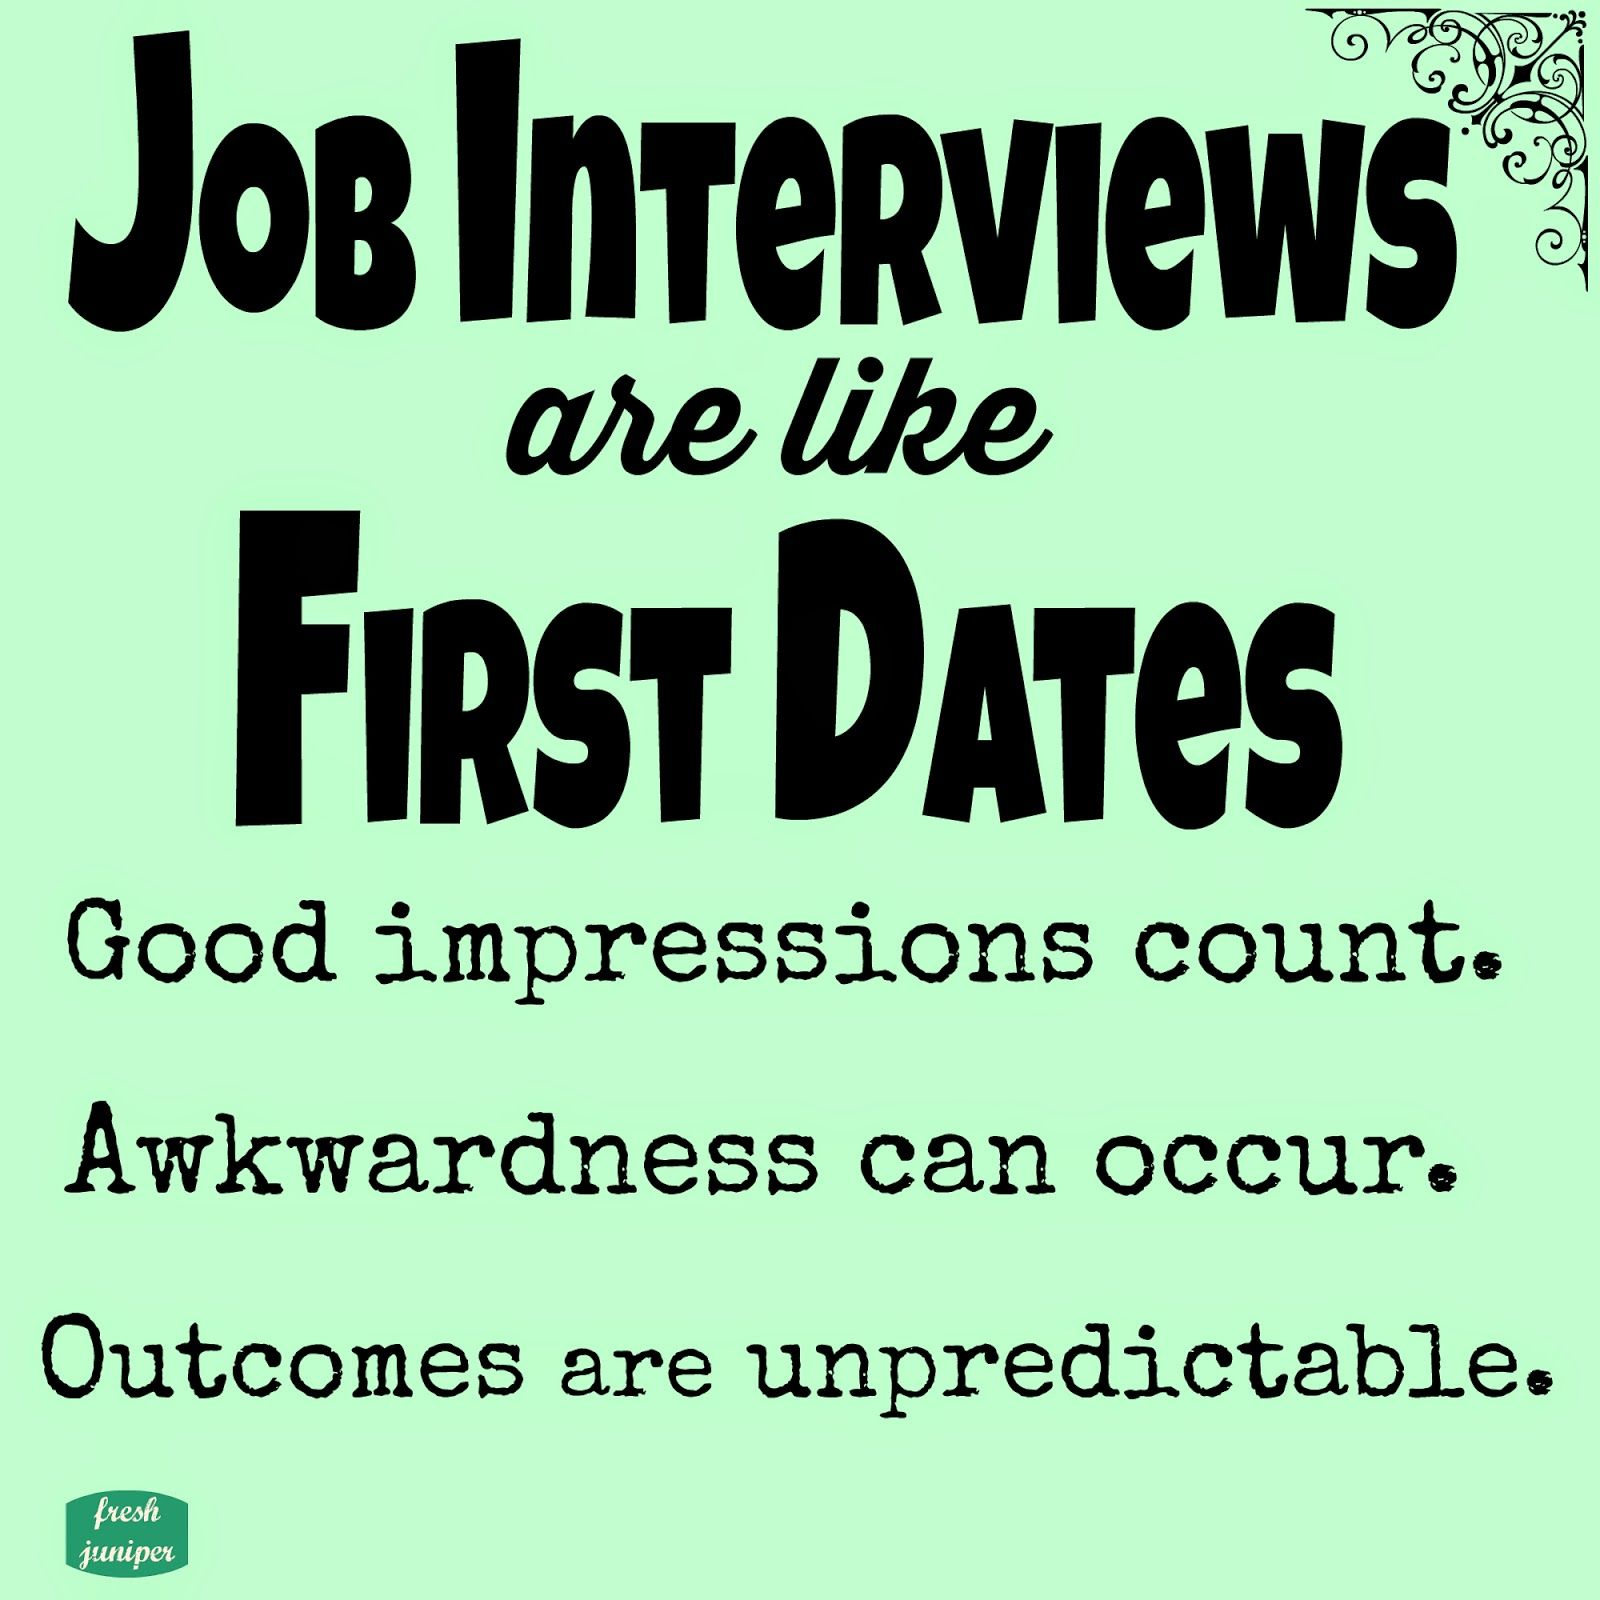 Quality Of Work Quotes: Job Interviews Are Like First Dates #freeprintable #quote